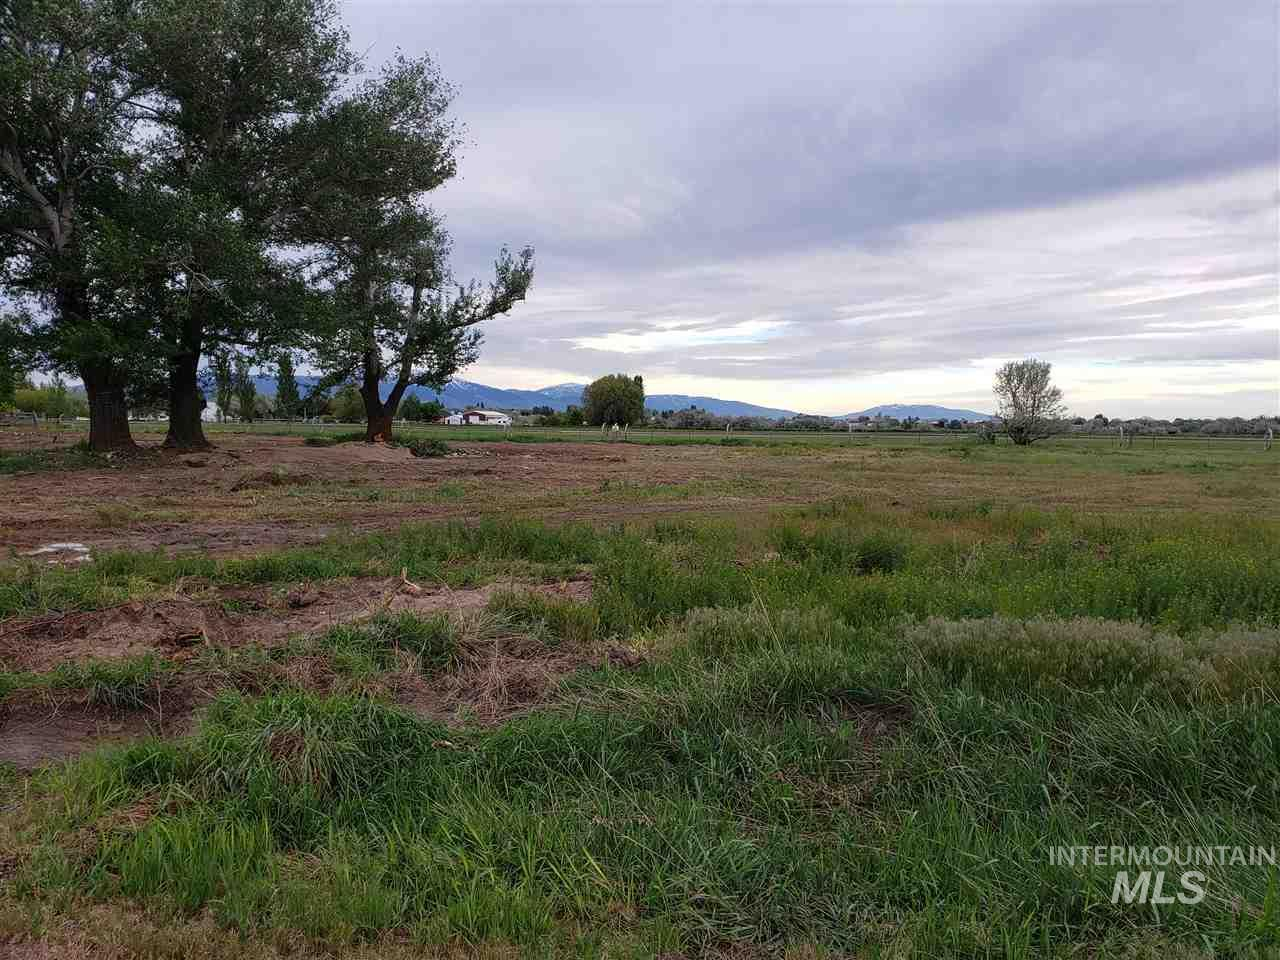 813 W 500 S, Heyburn, Idaho 83336, Land For Sale, Price $45,000, 98731576